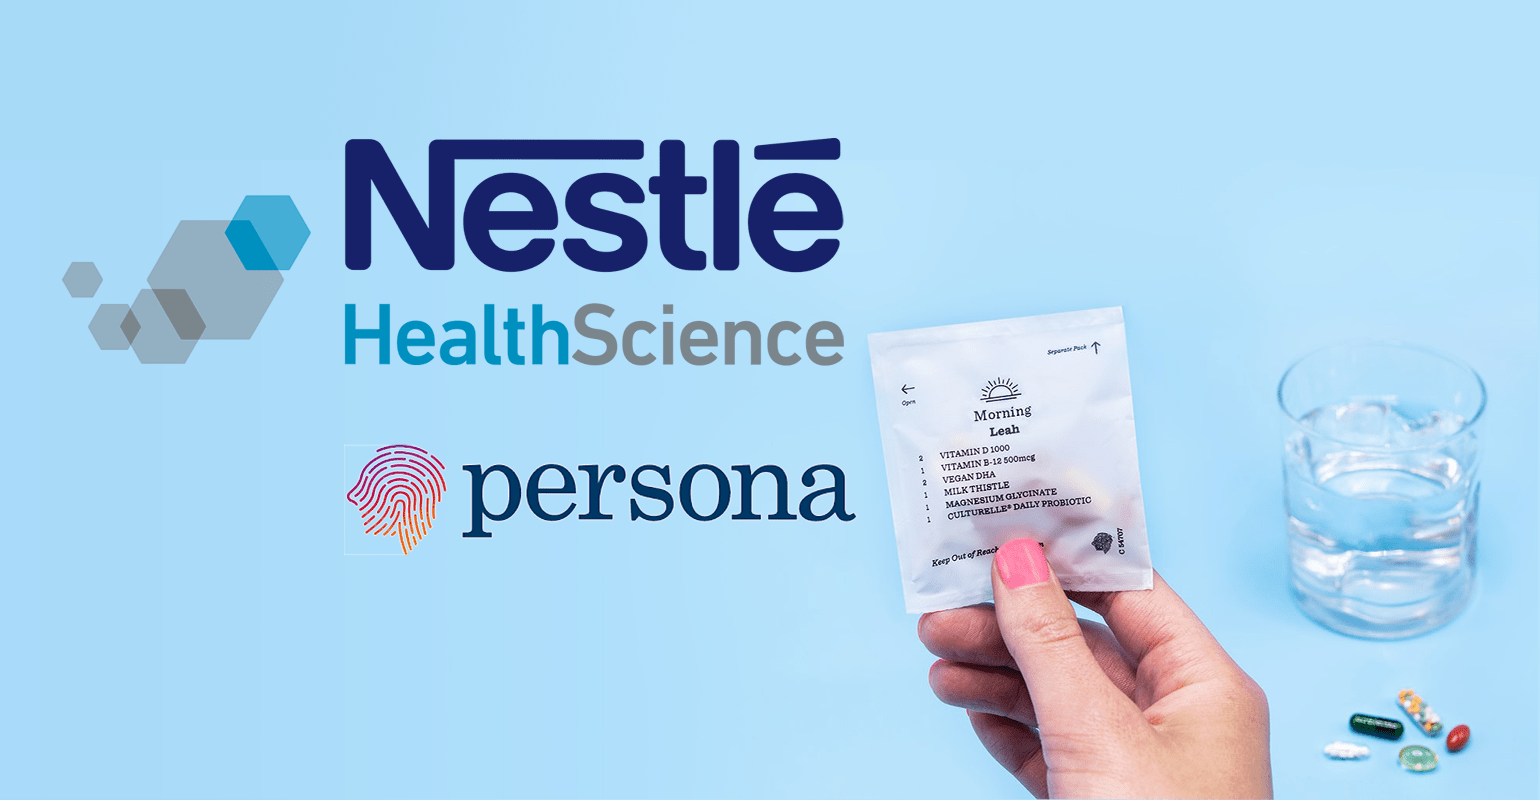 nestlé health science acquires